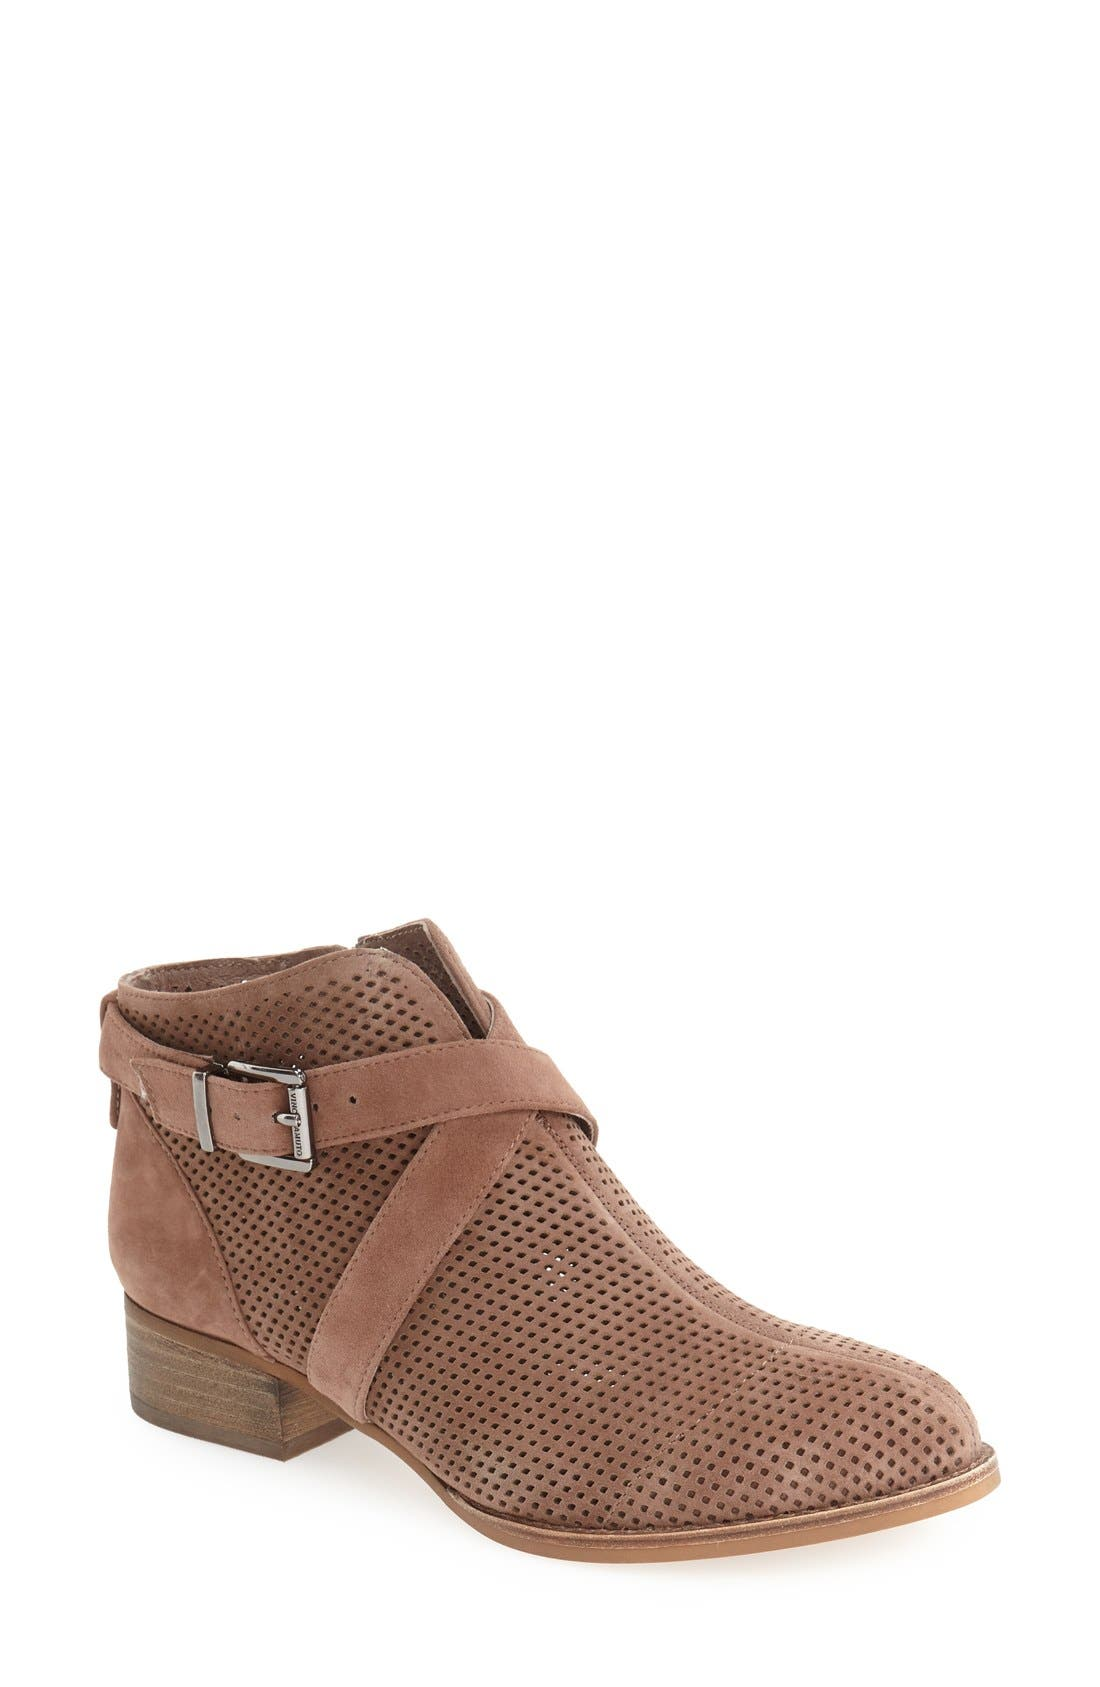 Alternate Image 1 Selected - Vince Camuto 'Casha' Perforated Bootie (Women)